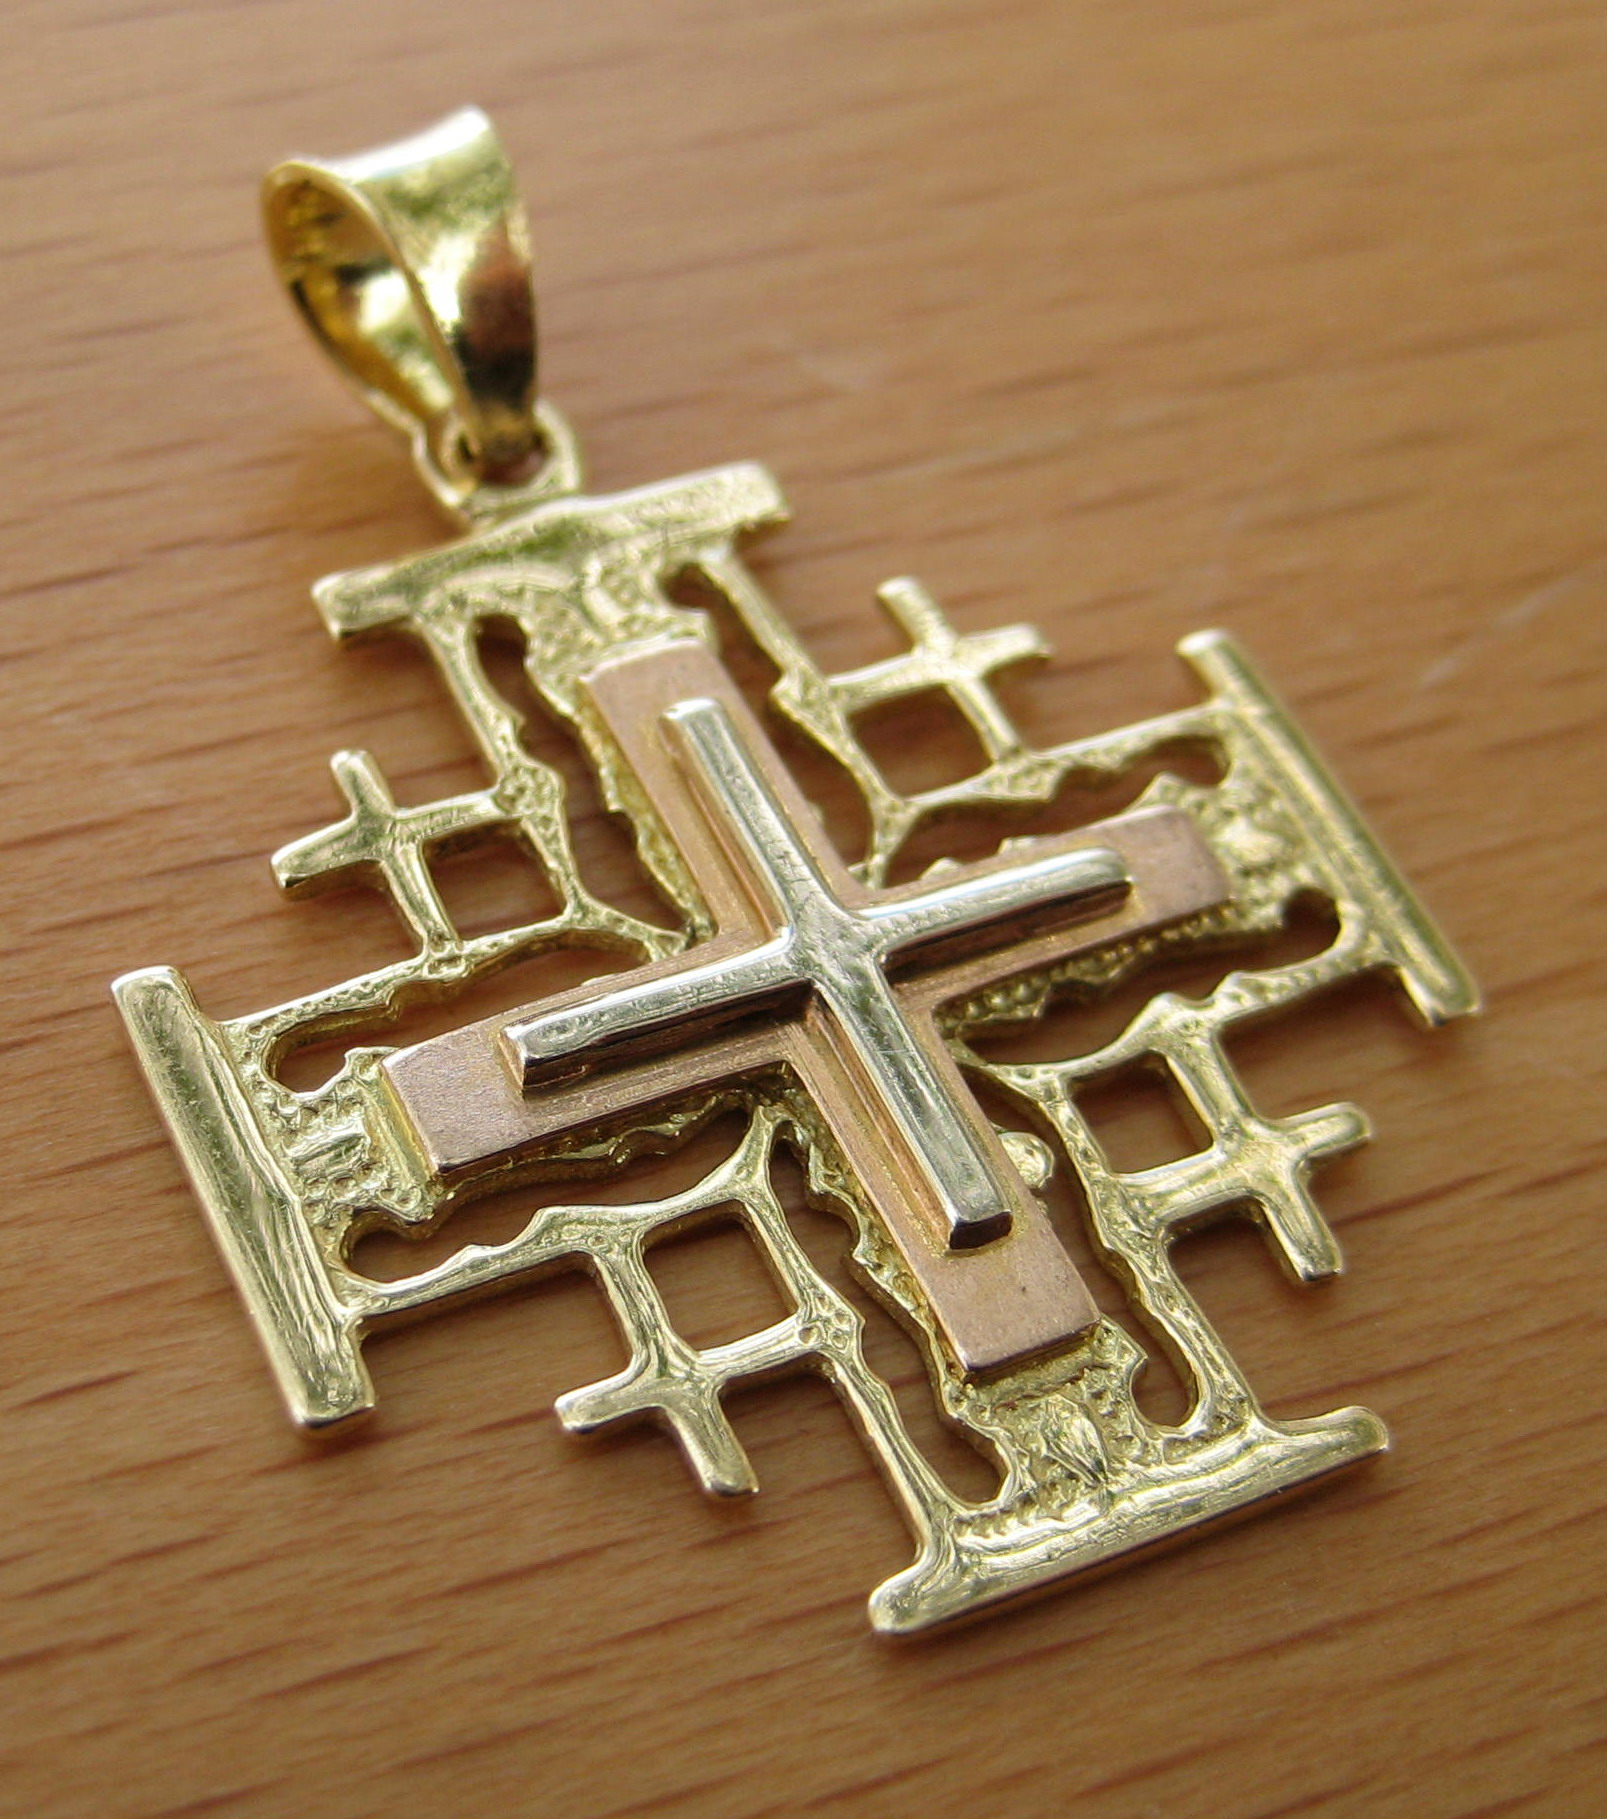 cross jewelry vintage made jerusalem pendant pic pin silver lane item in f four accessories ruby